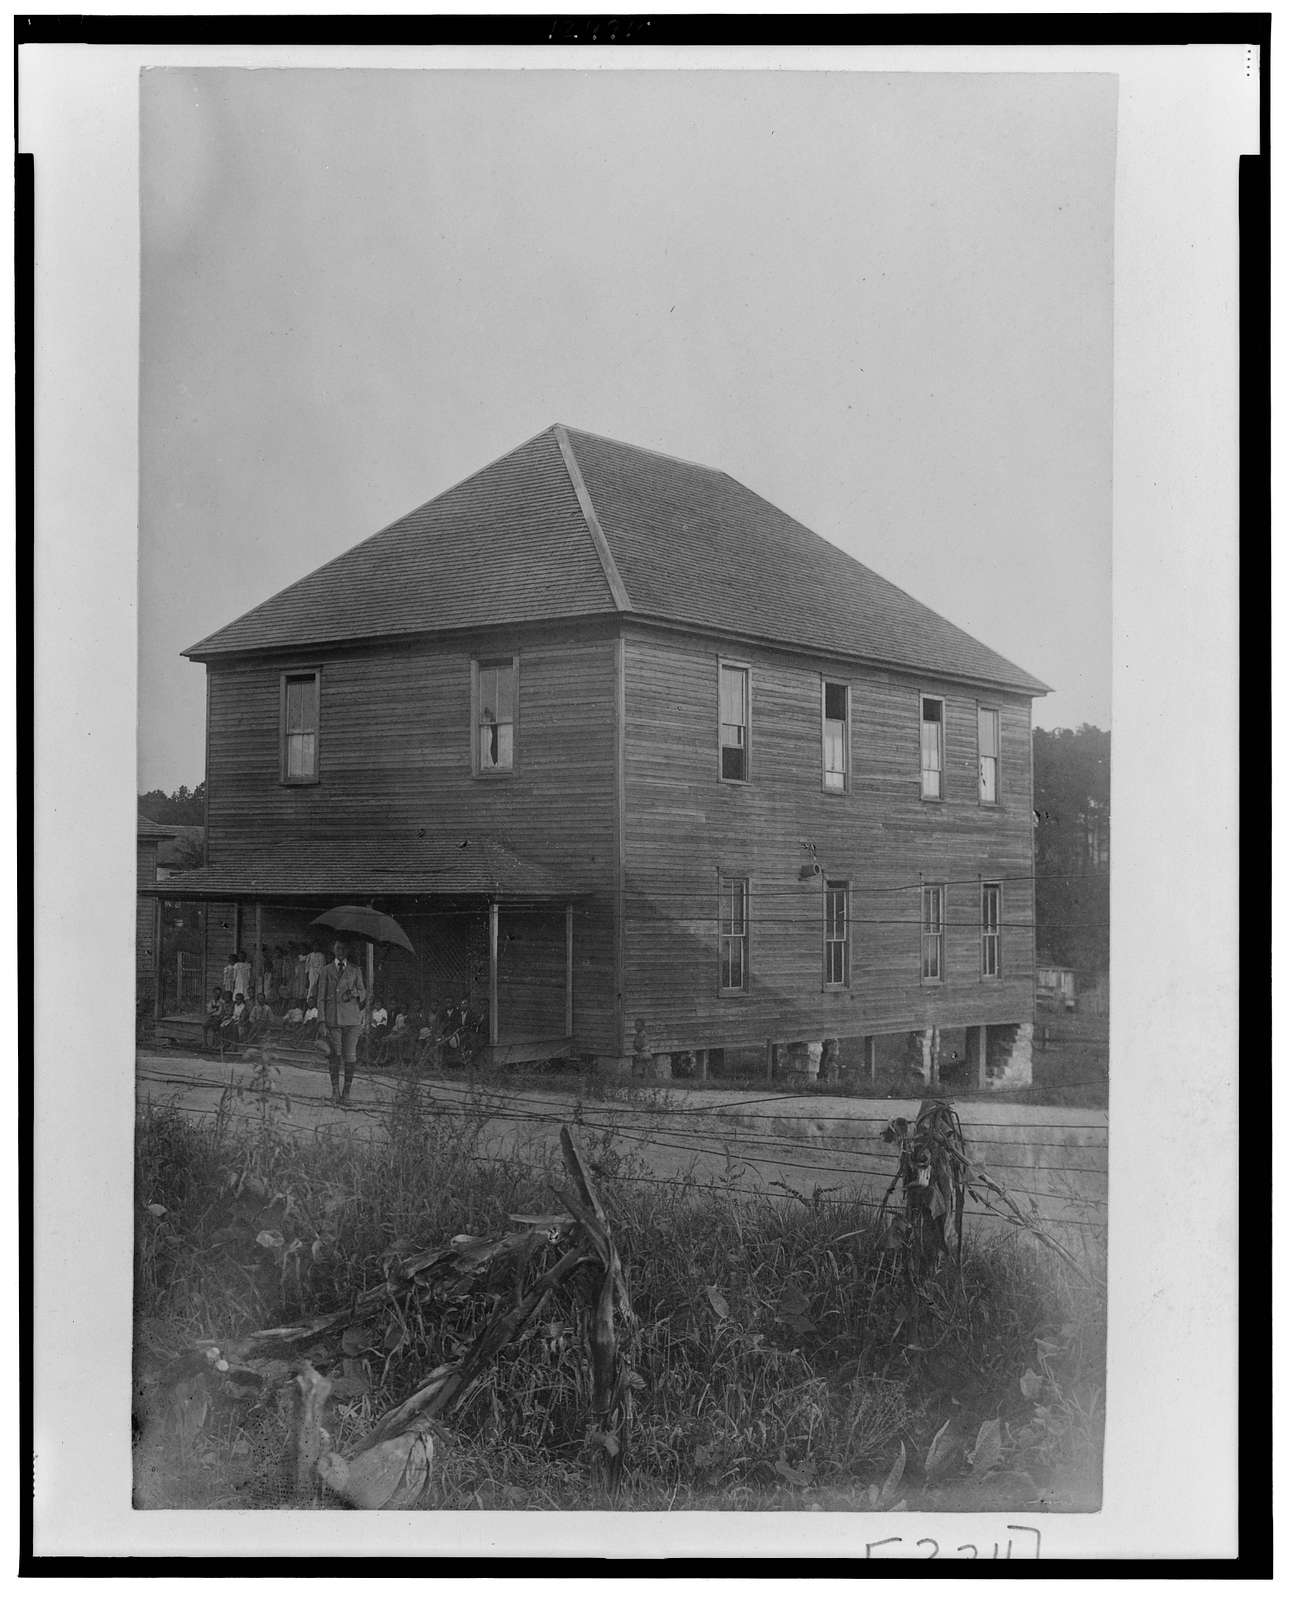 [Exterior view of large unidentified building in Georgia, with a man standing in front holding an umbrella, and a group of children sitting on the porch]